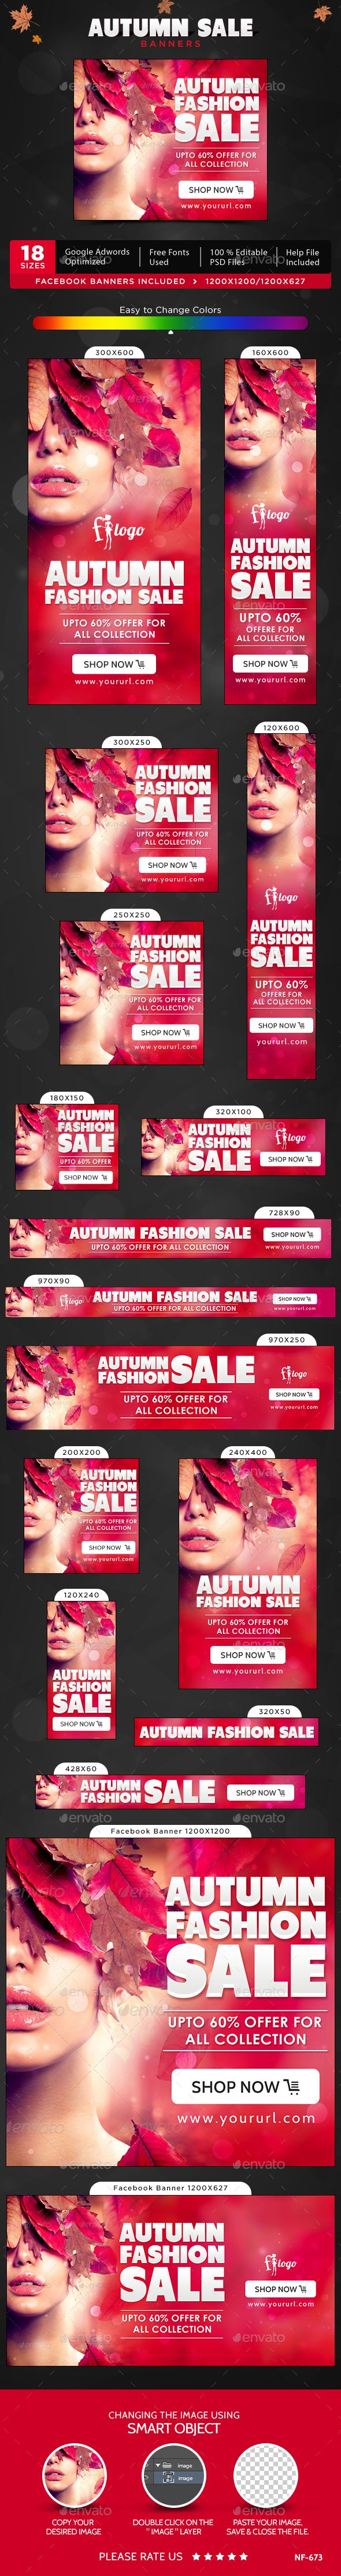 Autumn Sale Web Banners Template #design #ads Download: http://graphicriver.net/item/autumn-sale-banners/13092961?ref=ksioks